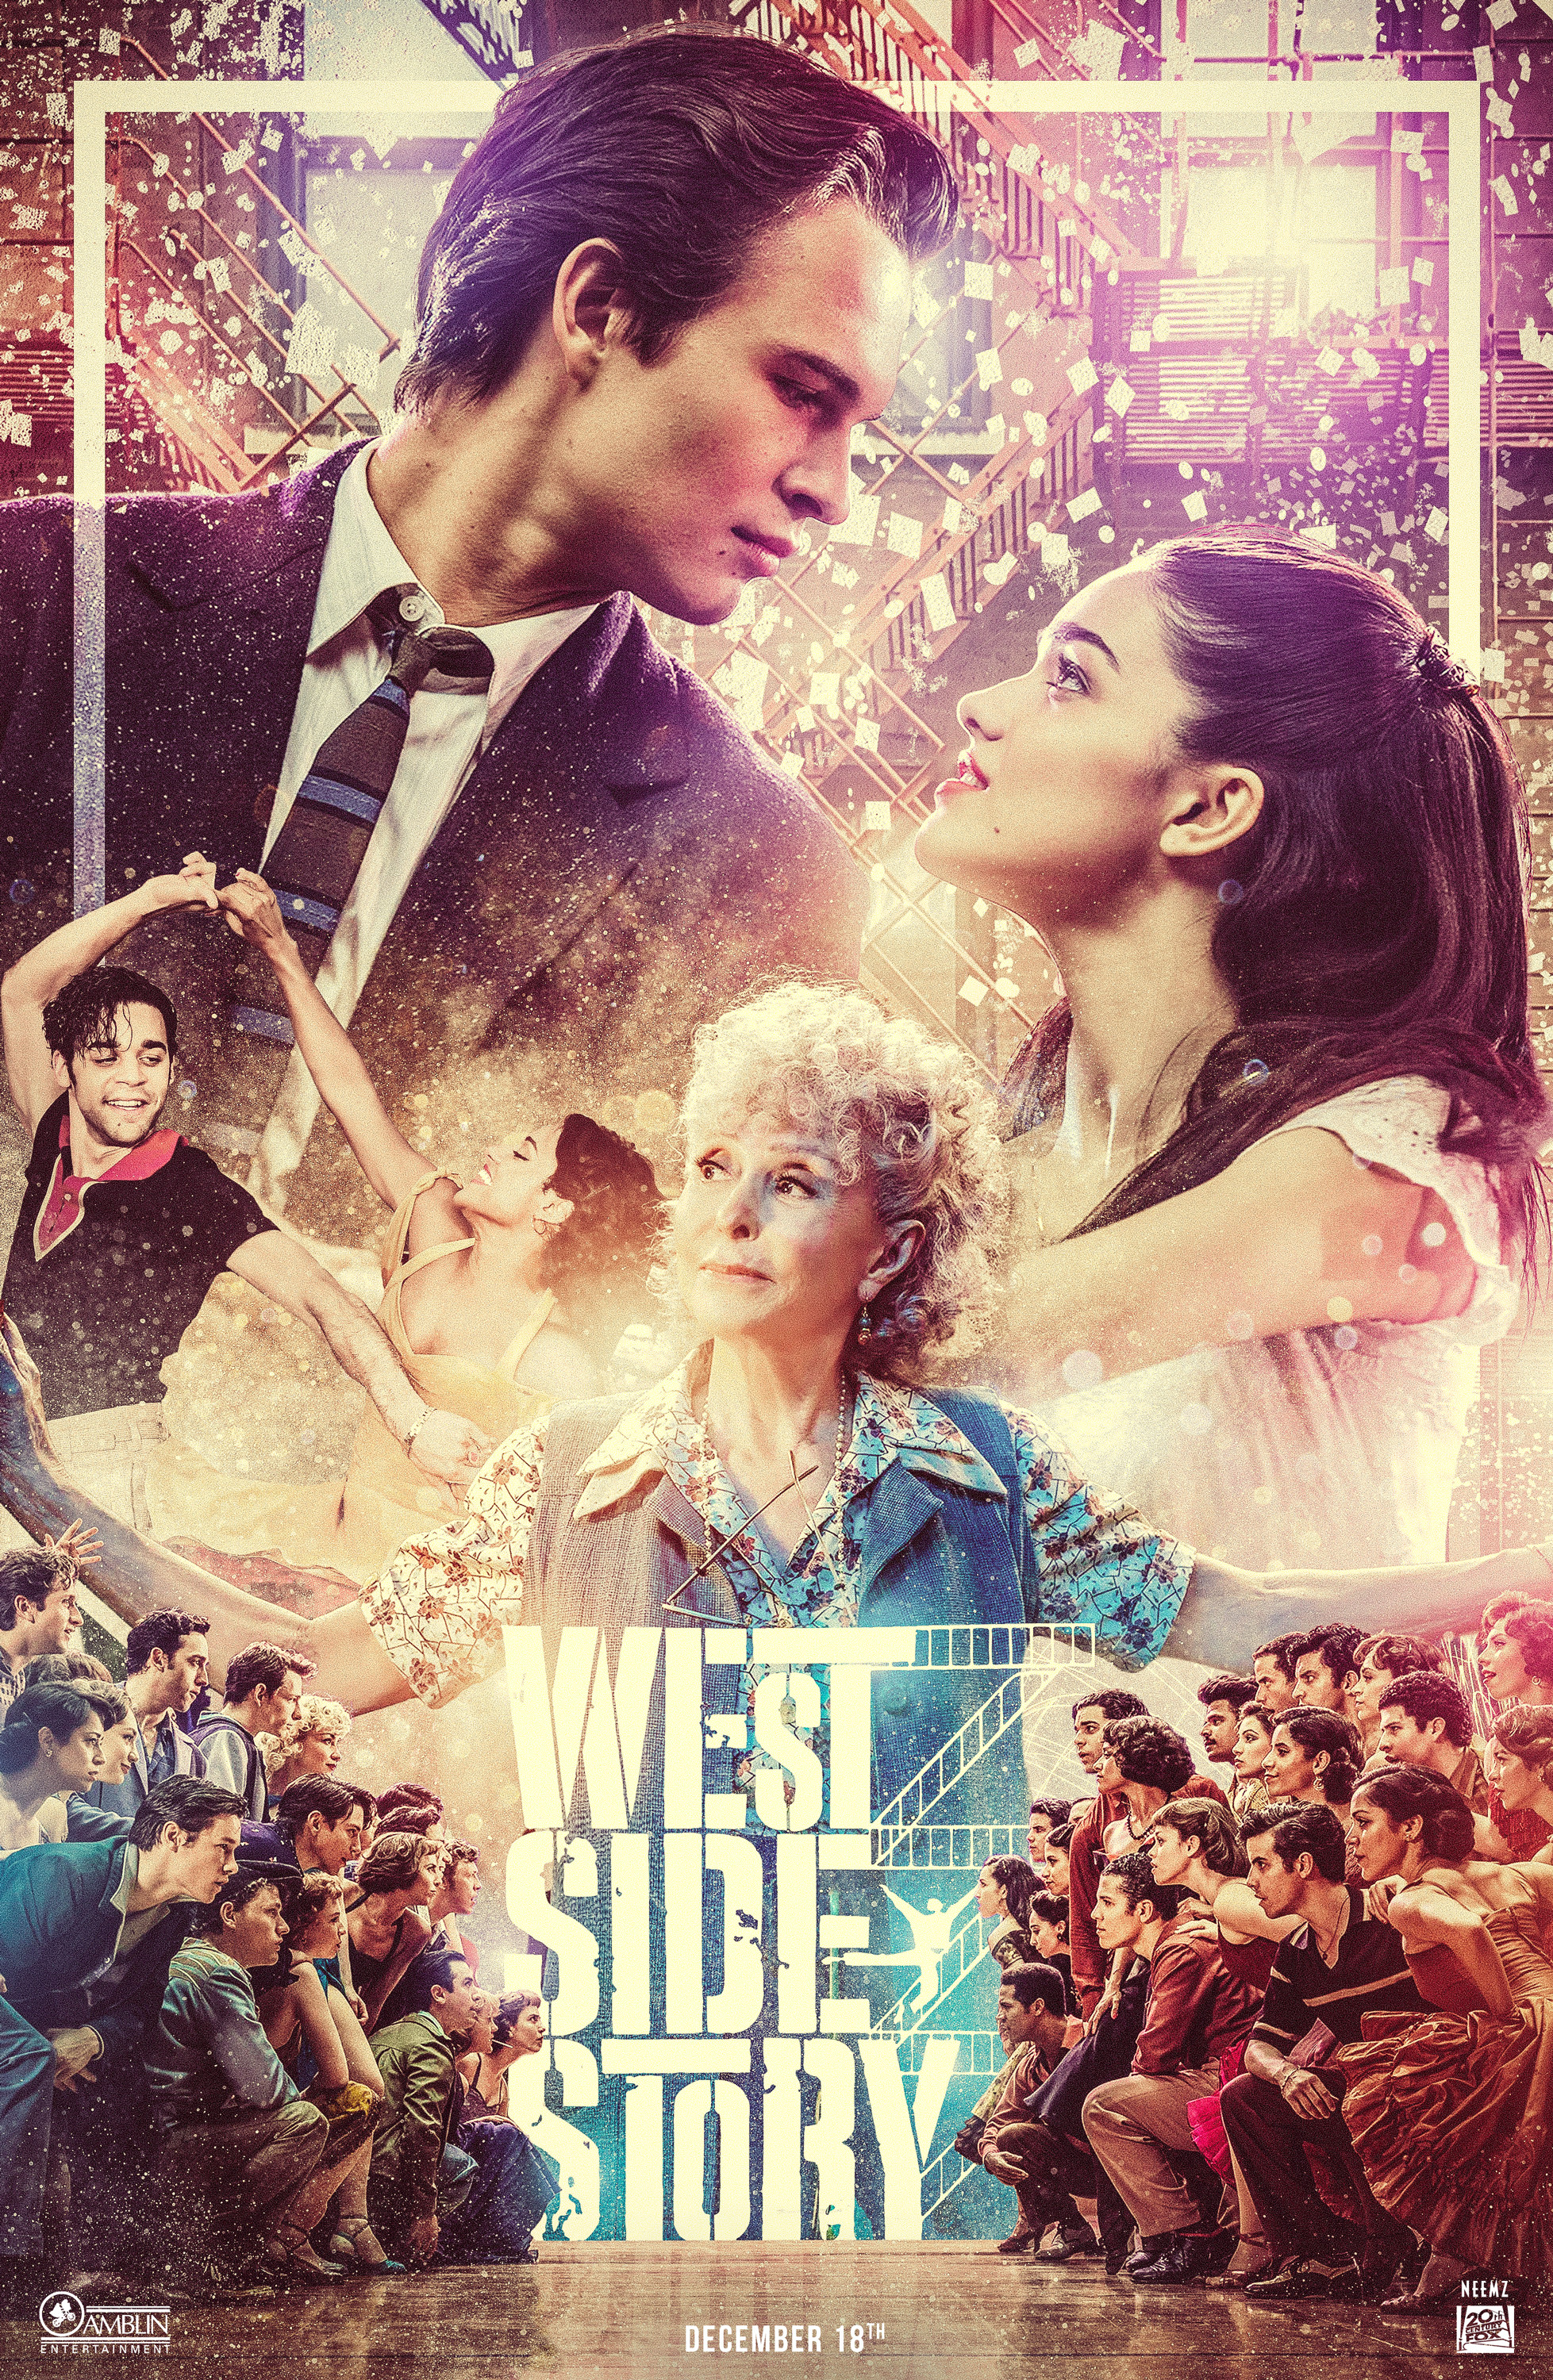 West Side Story Movie Poster - Directed by Steven Spielberg - Designed by Neemz, The Movie Poster Guy